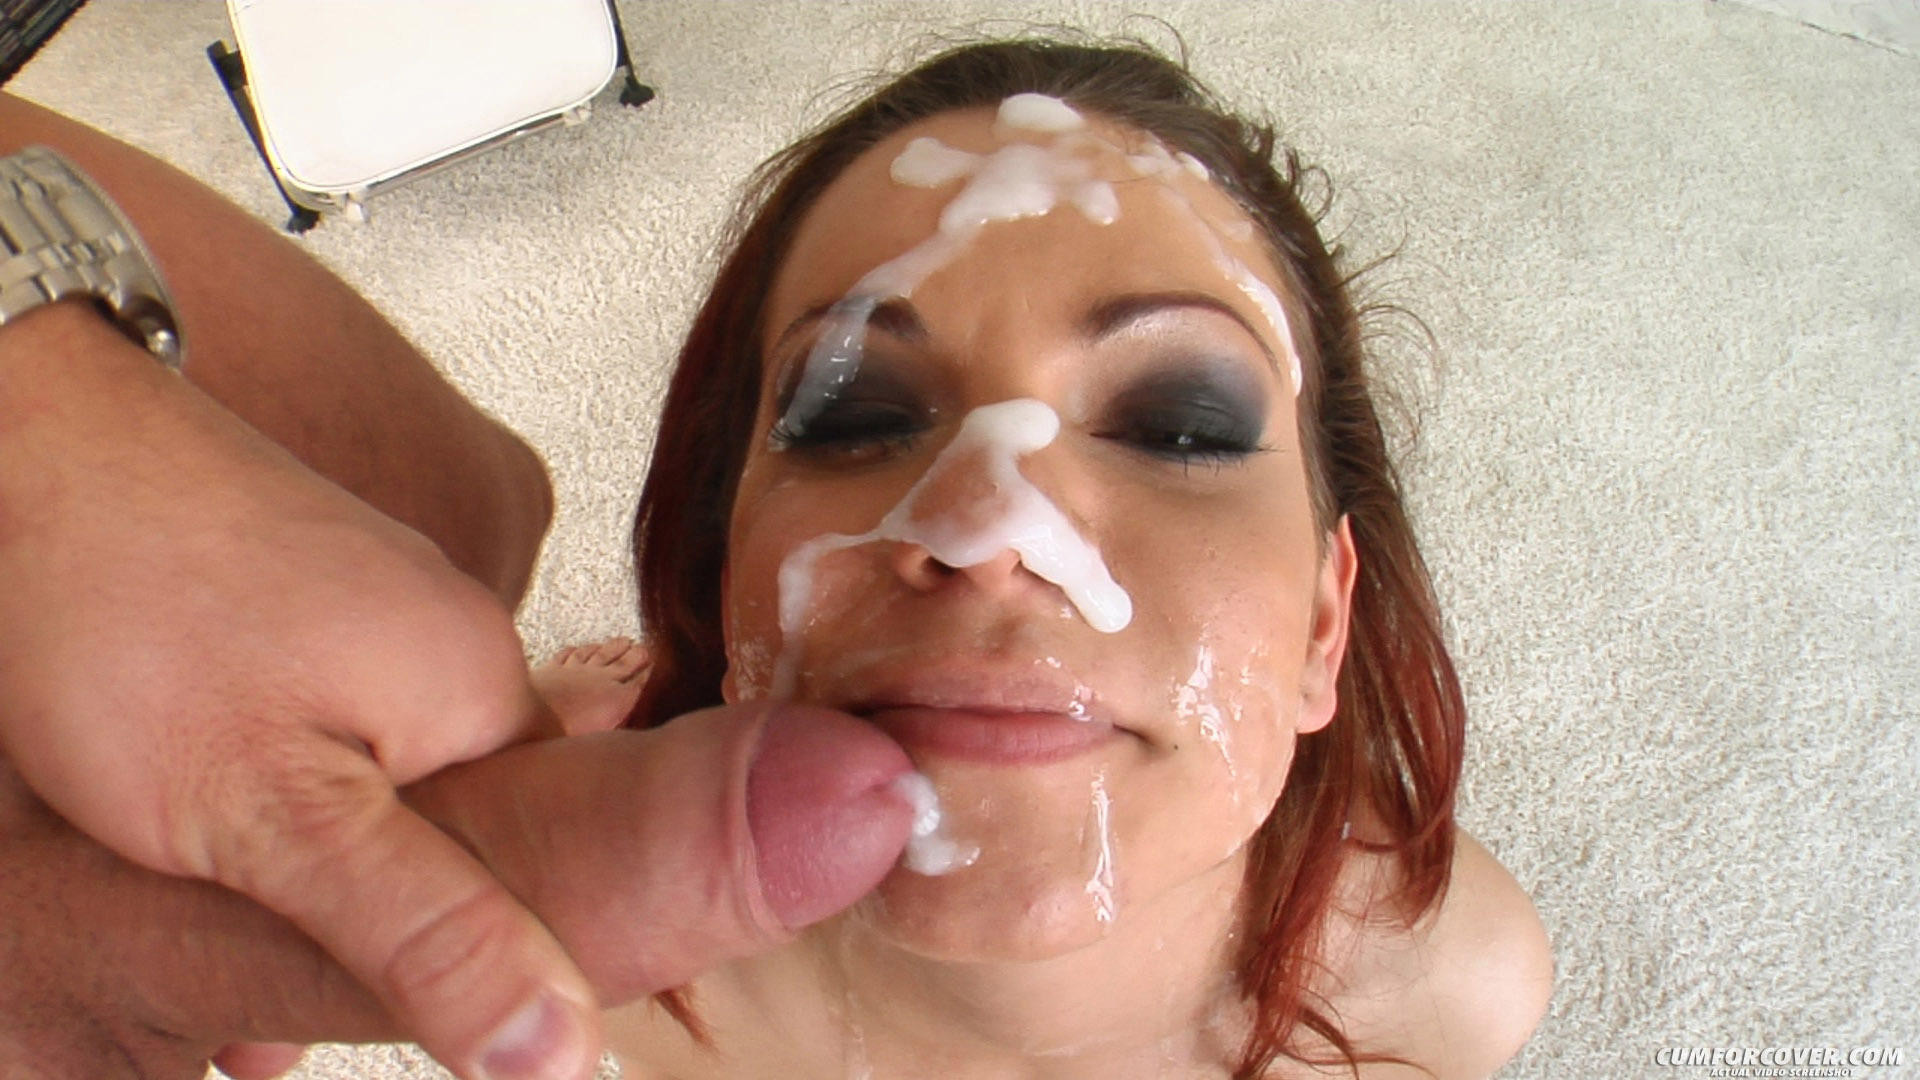 Above extreme group facial load confirm. join